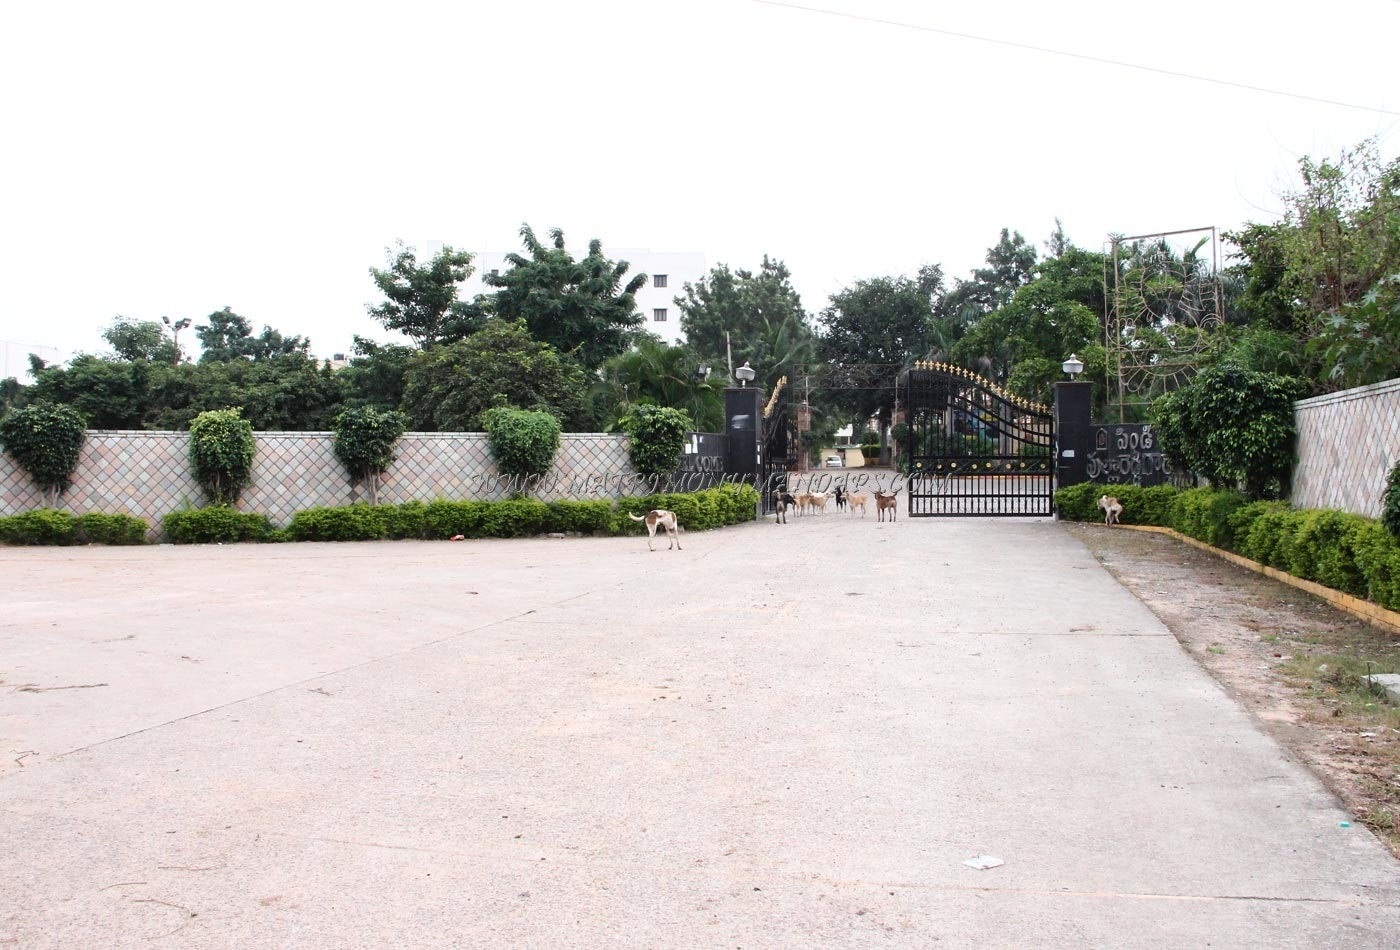 Find the availability of the Pindi Pulla Reddy Gardens in LB Nagar, Hyderabad and avail special offers